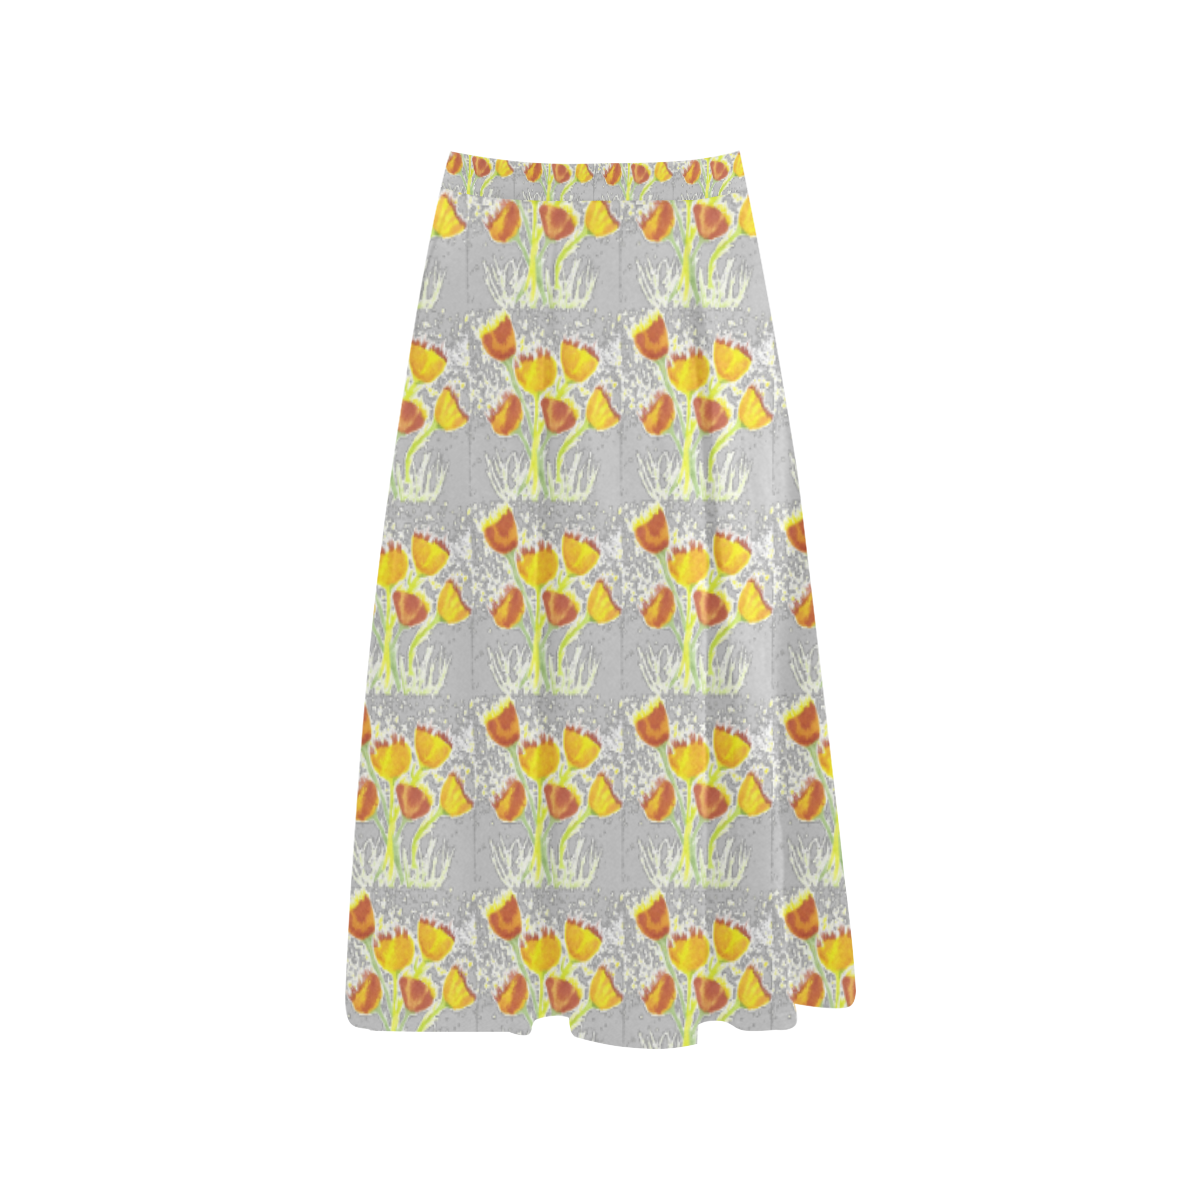 Stone Crepe Skirt With Yellow Poppies Aoede Crepe Skirt (Model D16)